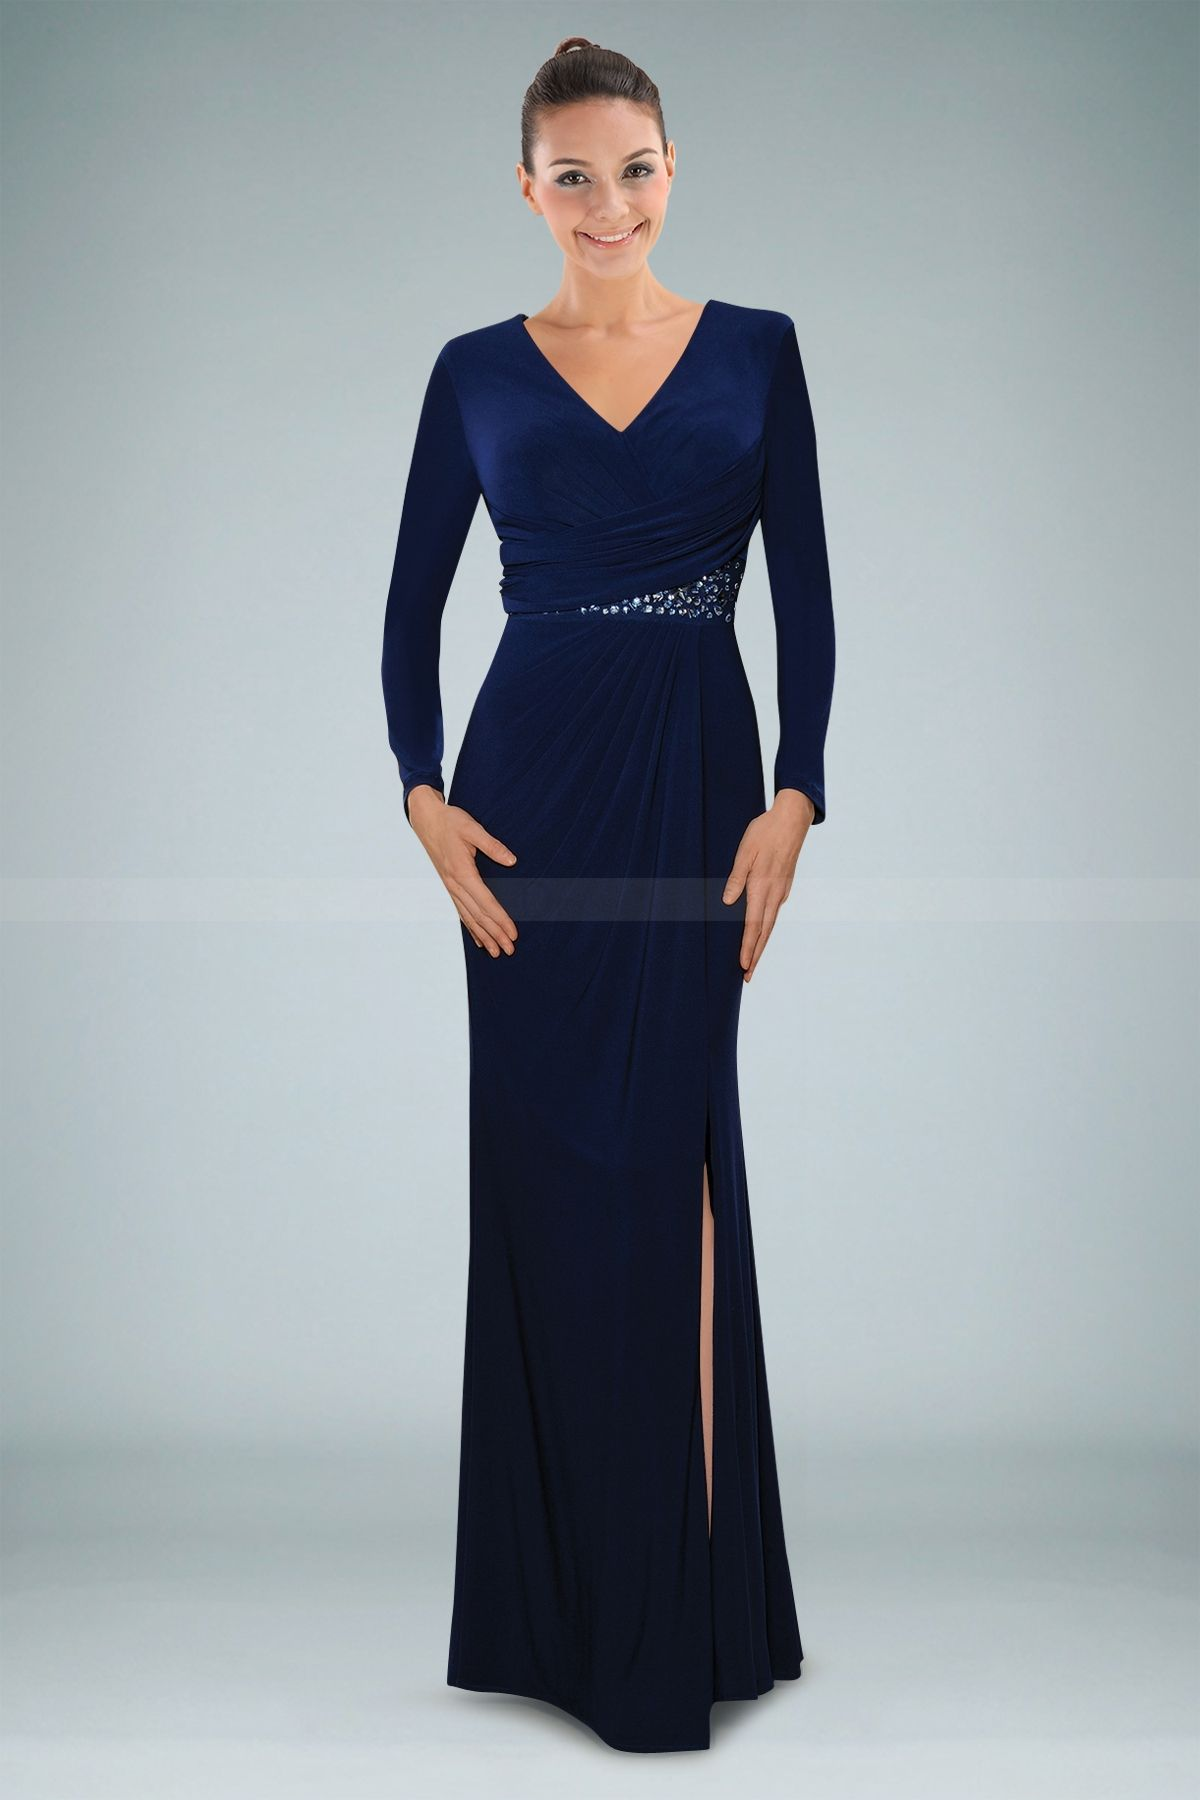 Classic holiday christmas party evening gown in blue | 40th Birthday ...